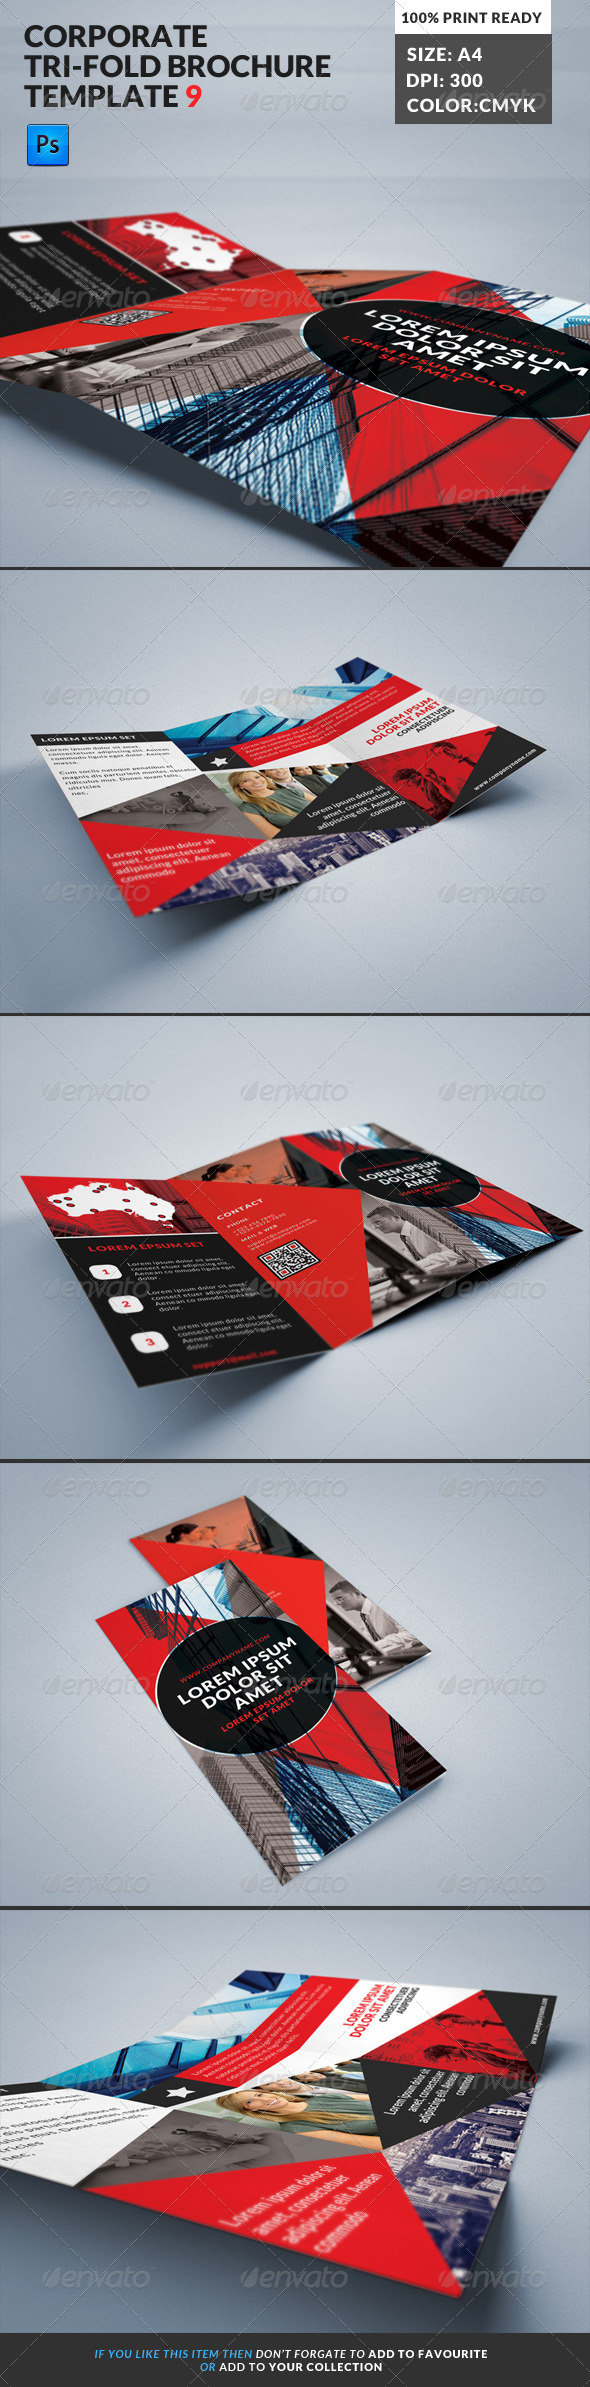 GraphicRiver Corporate Tri-Fold Brochures Template 9 7845413